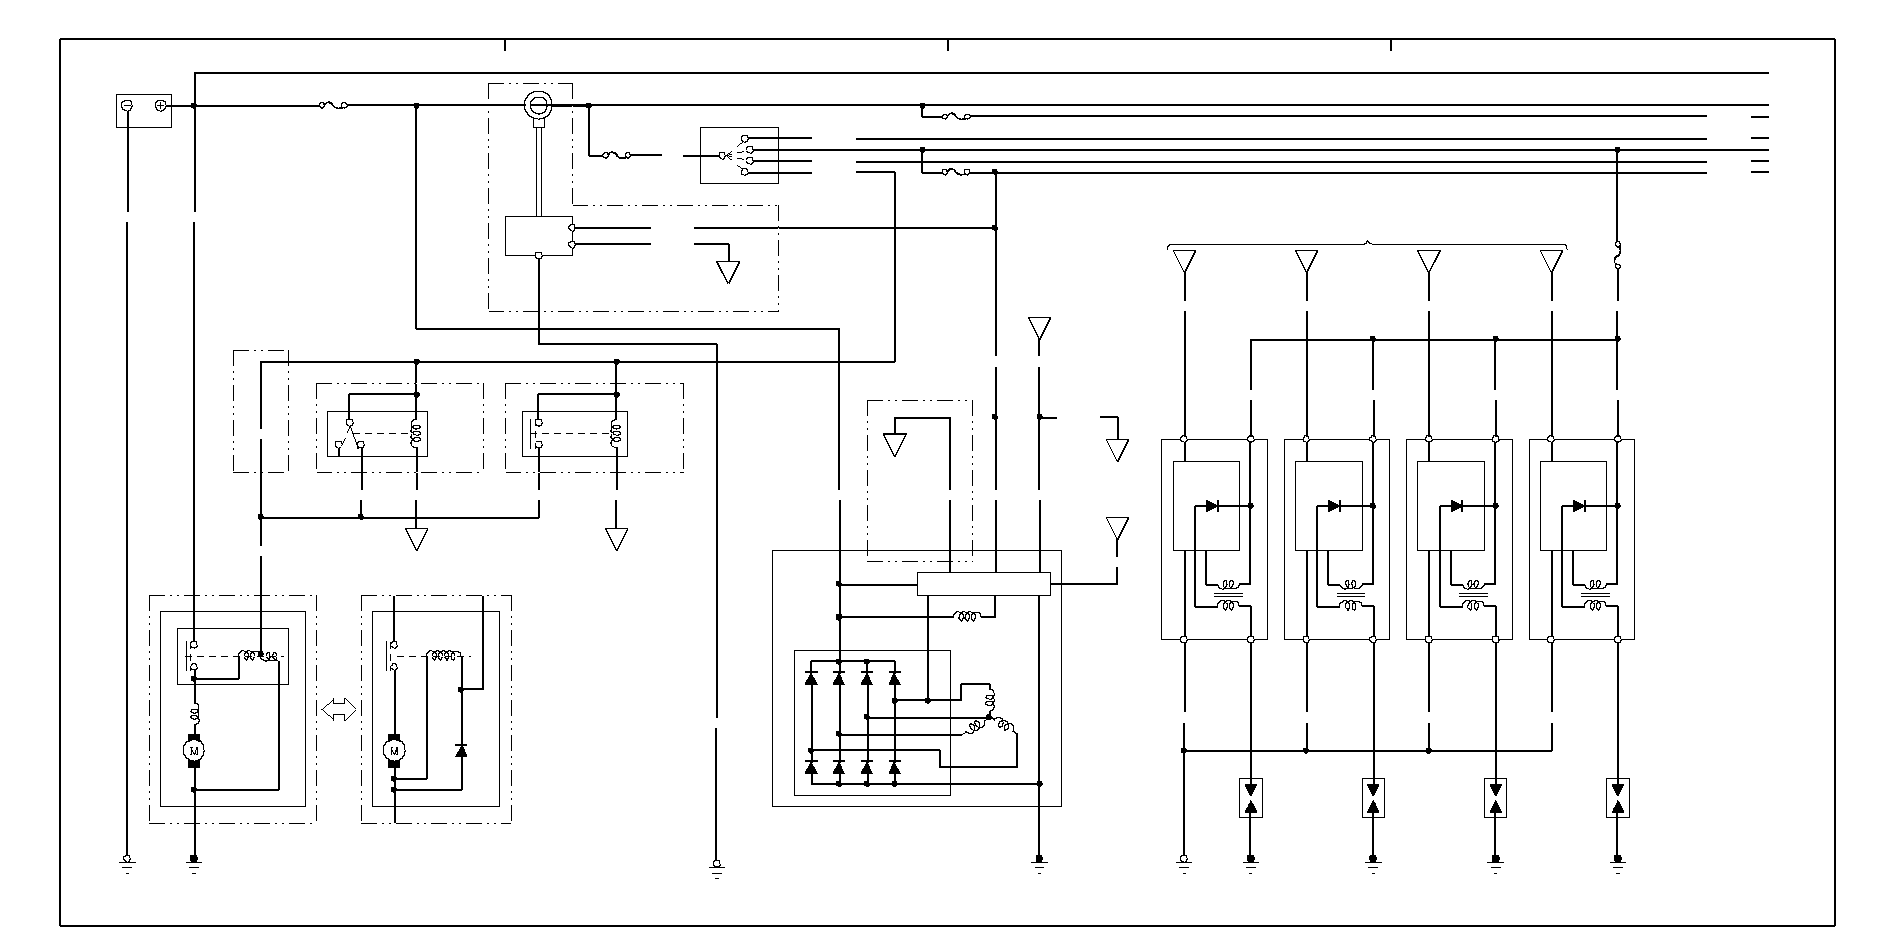 S9A2E00000000000000EBAD01 wiring diagram honda cr v 2002, 2003, 2004, 2005 service manual 2007 honda cr v wiring diagram at edmiracle.co